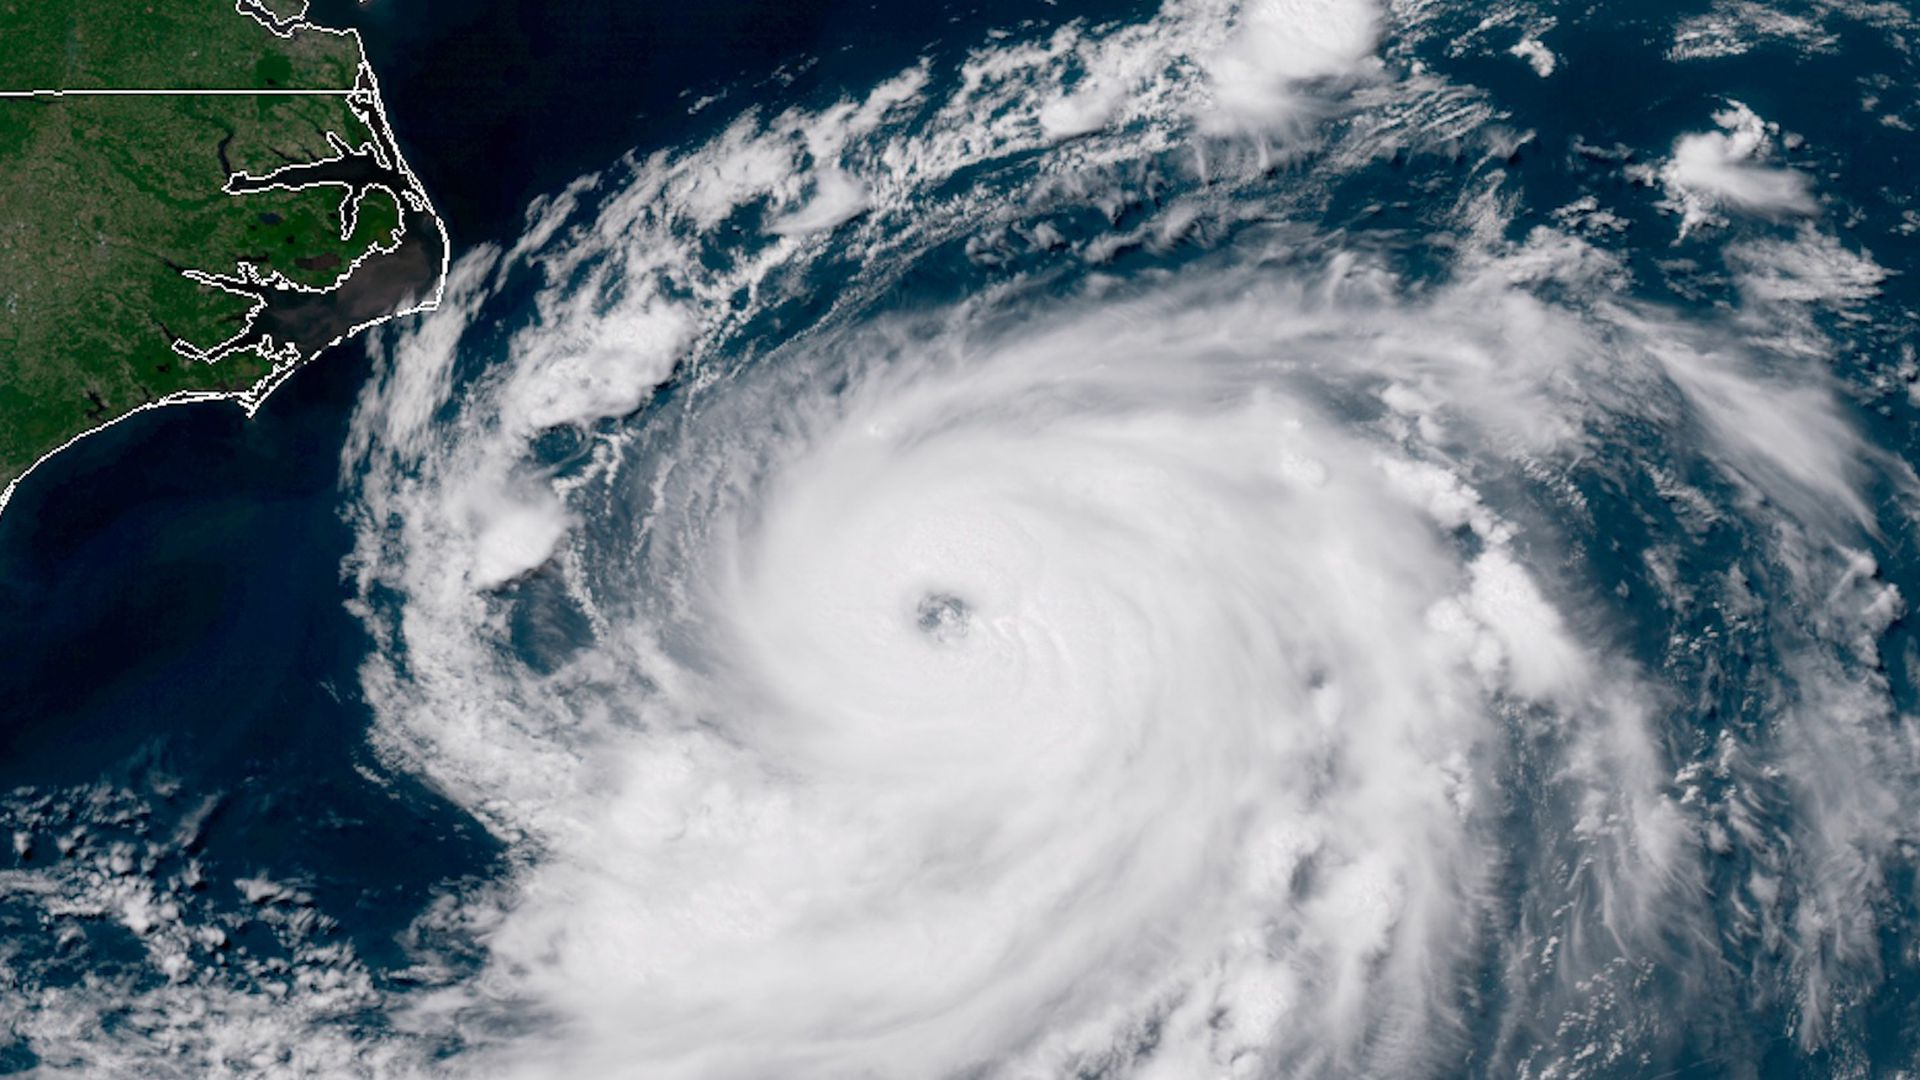 Satellite image showing Hurricane Chris swirling off the coast of North Carolina.